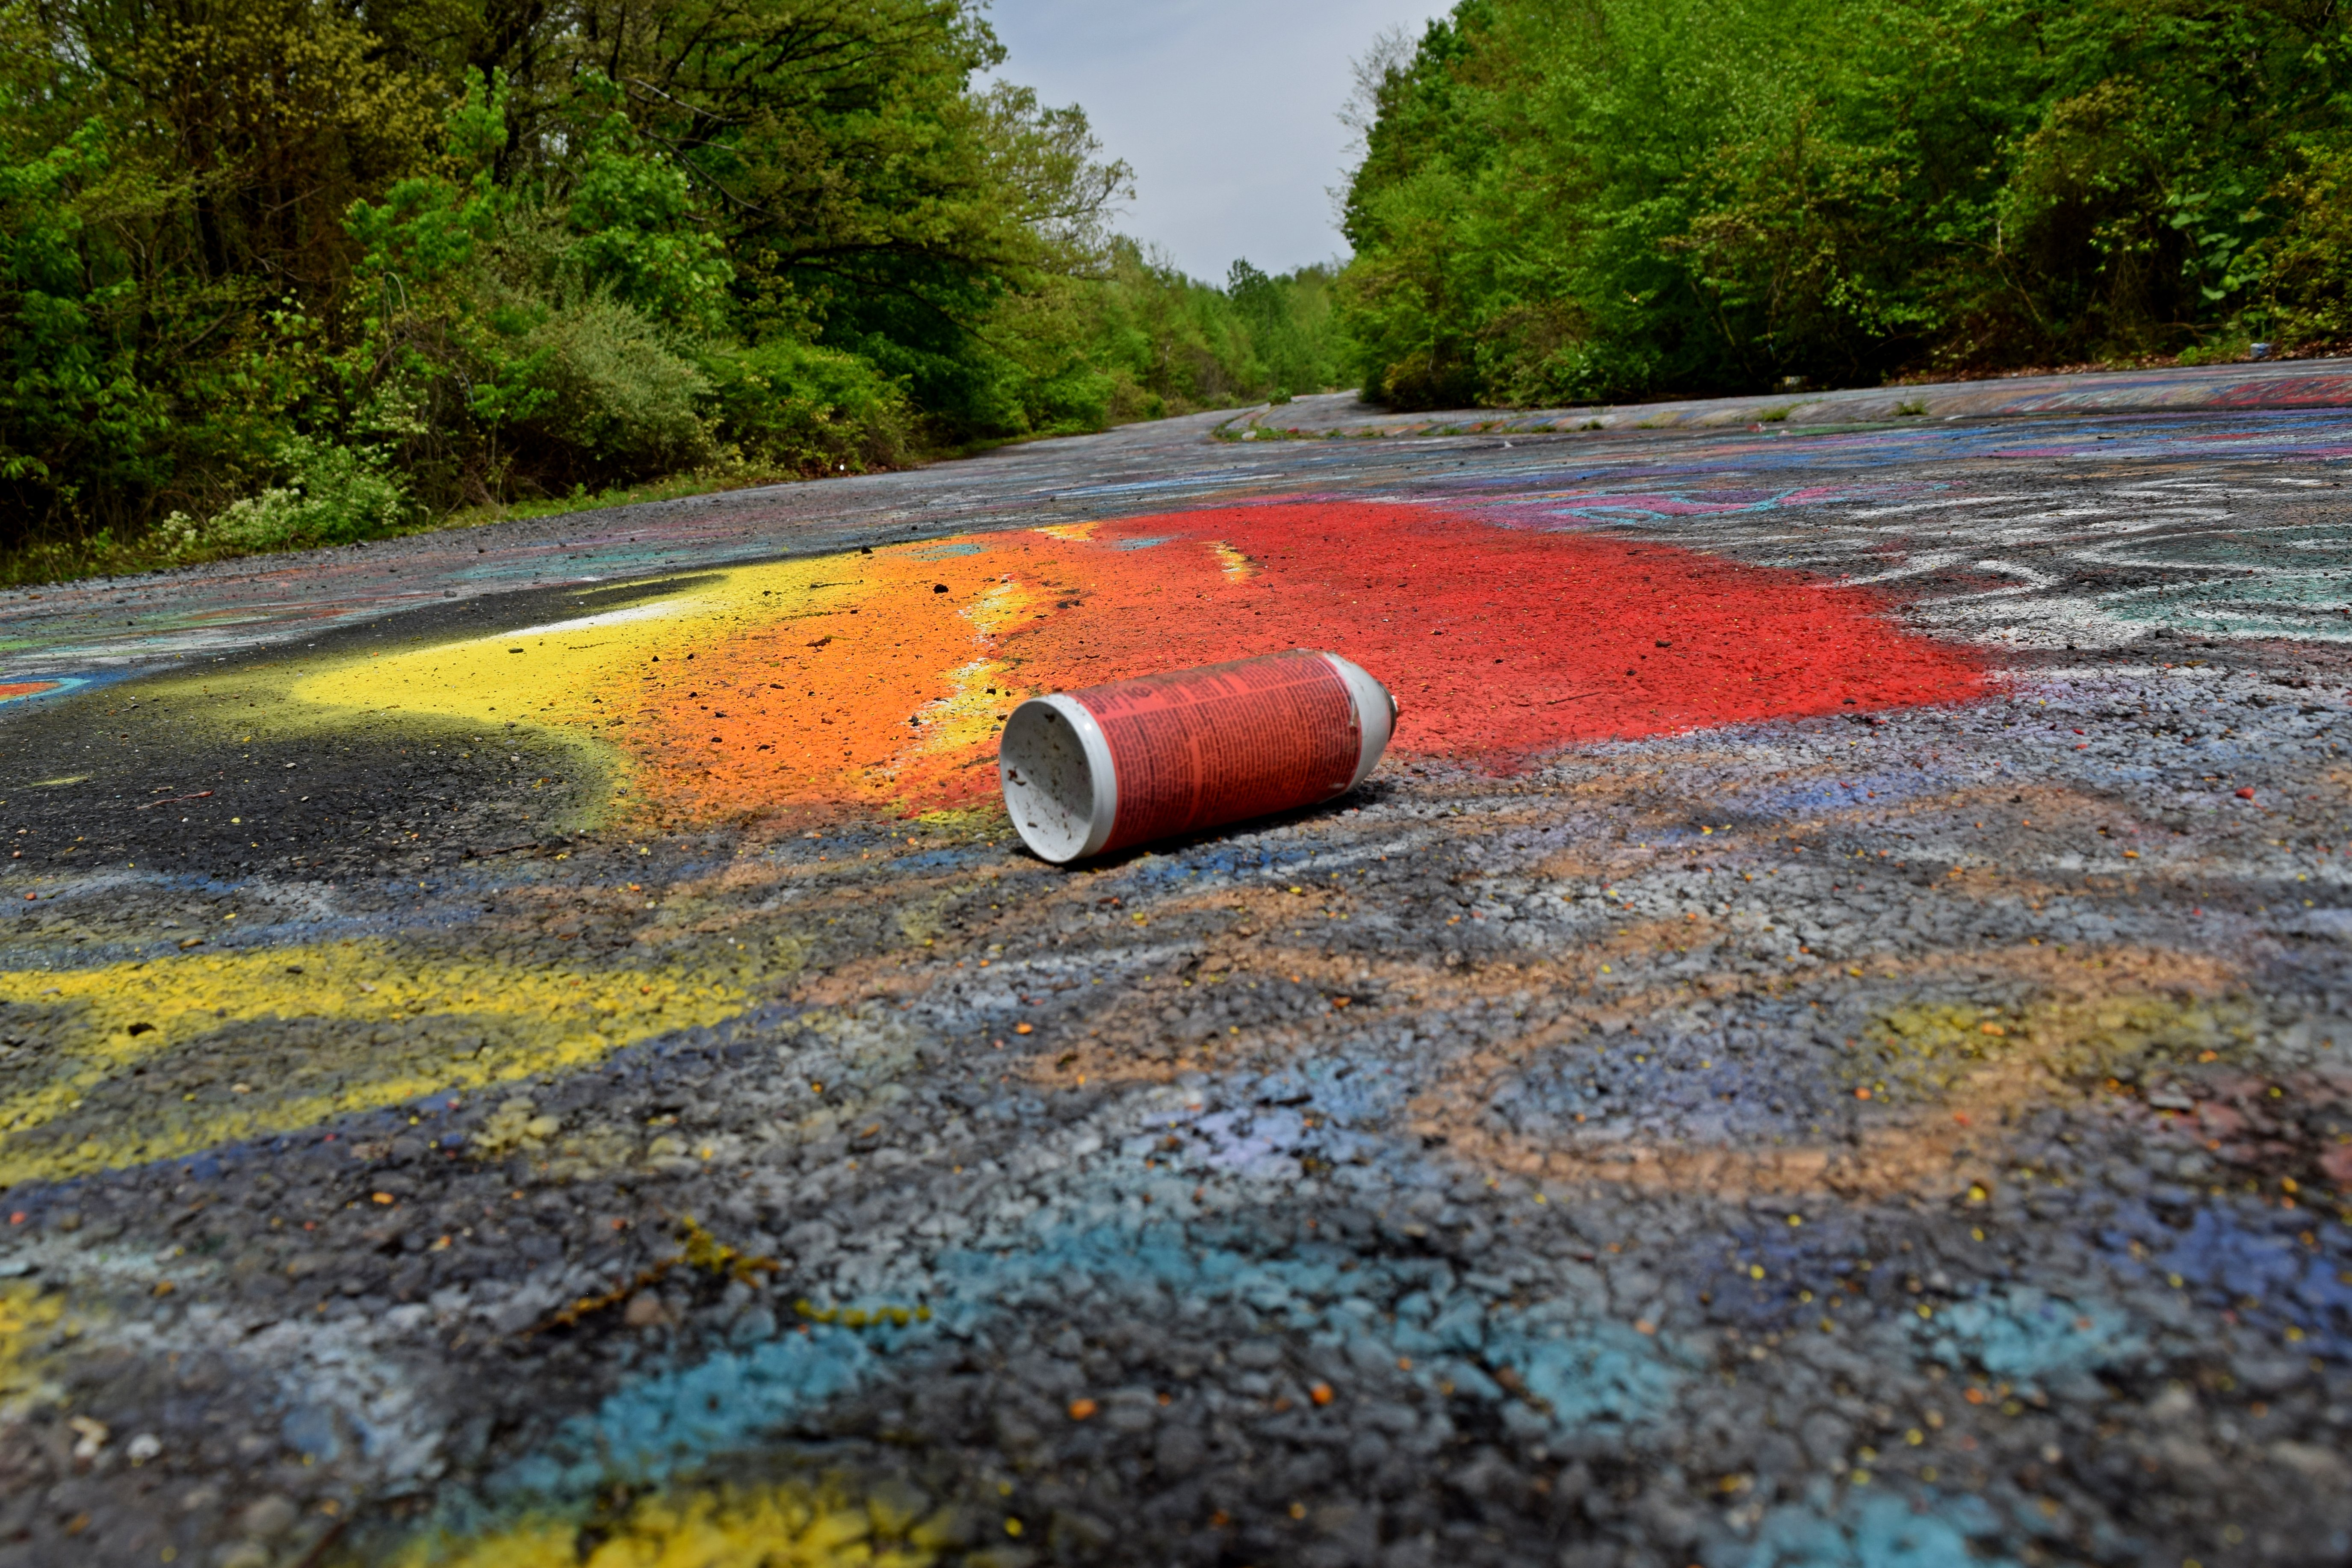 Discarded Can Of Spray Paint On The Graffiti Highway